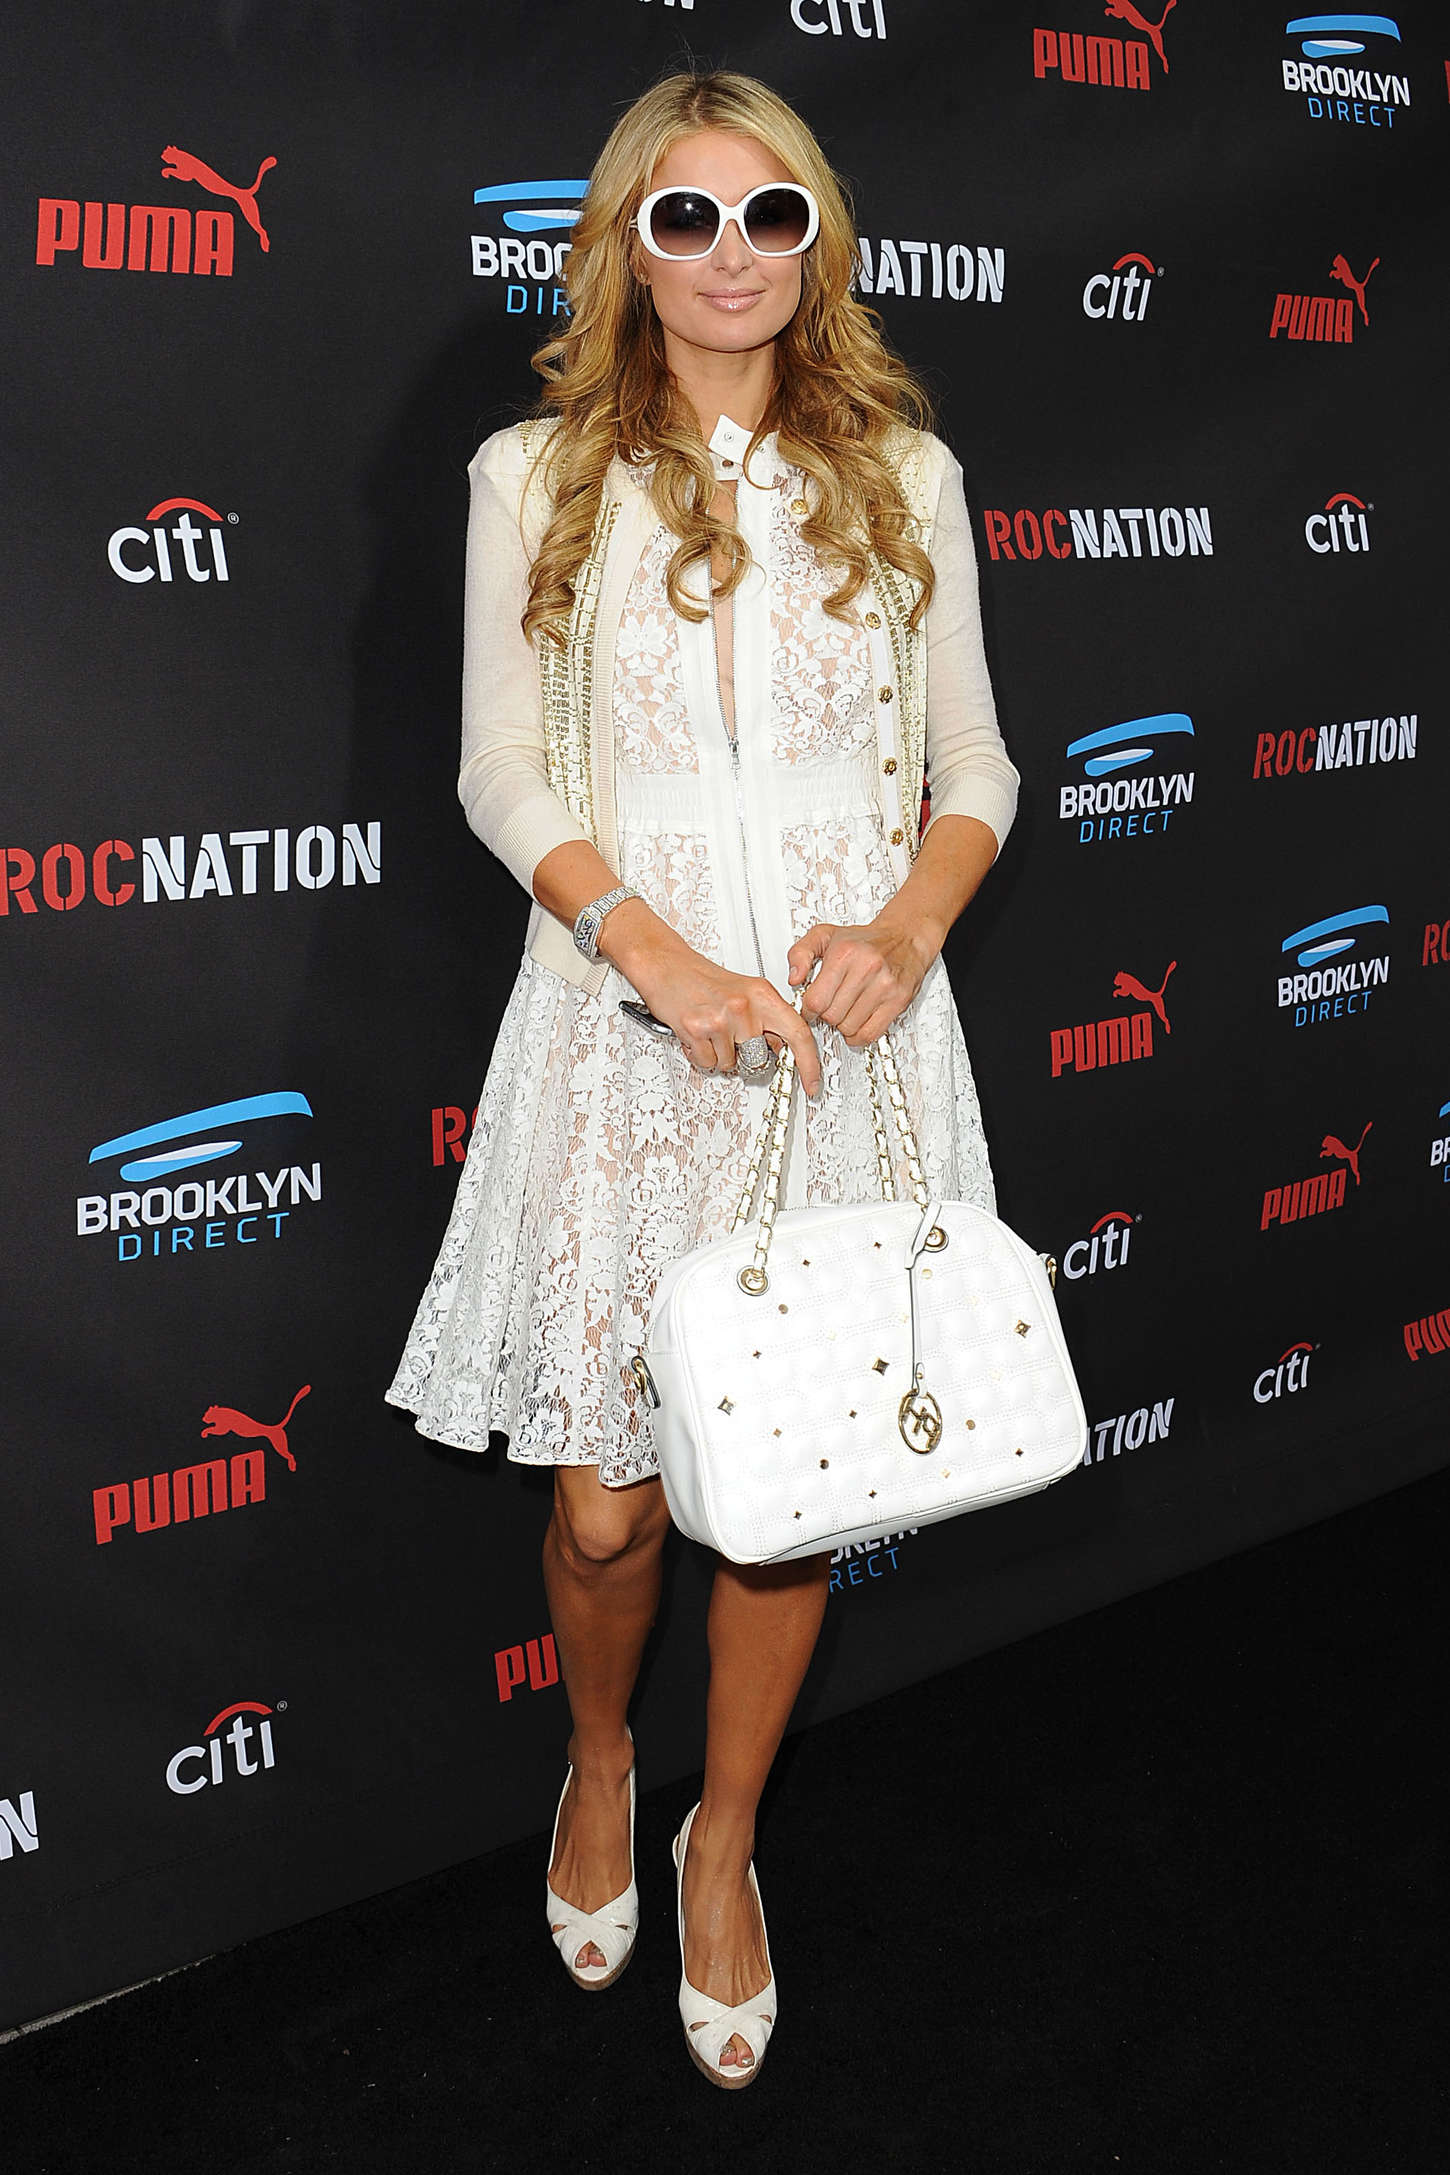 Paris Hilton 2015 : Paris Hilton: Roc Nation Grammy Brunch 2015 -15